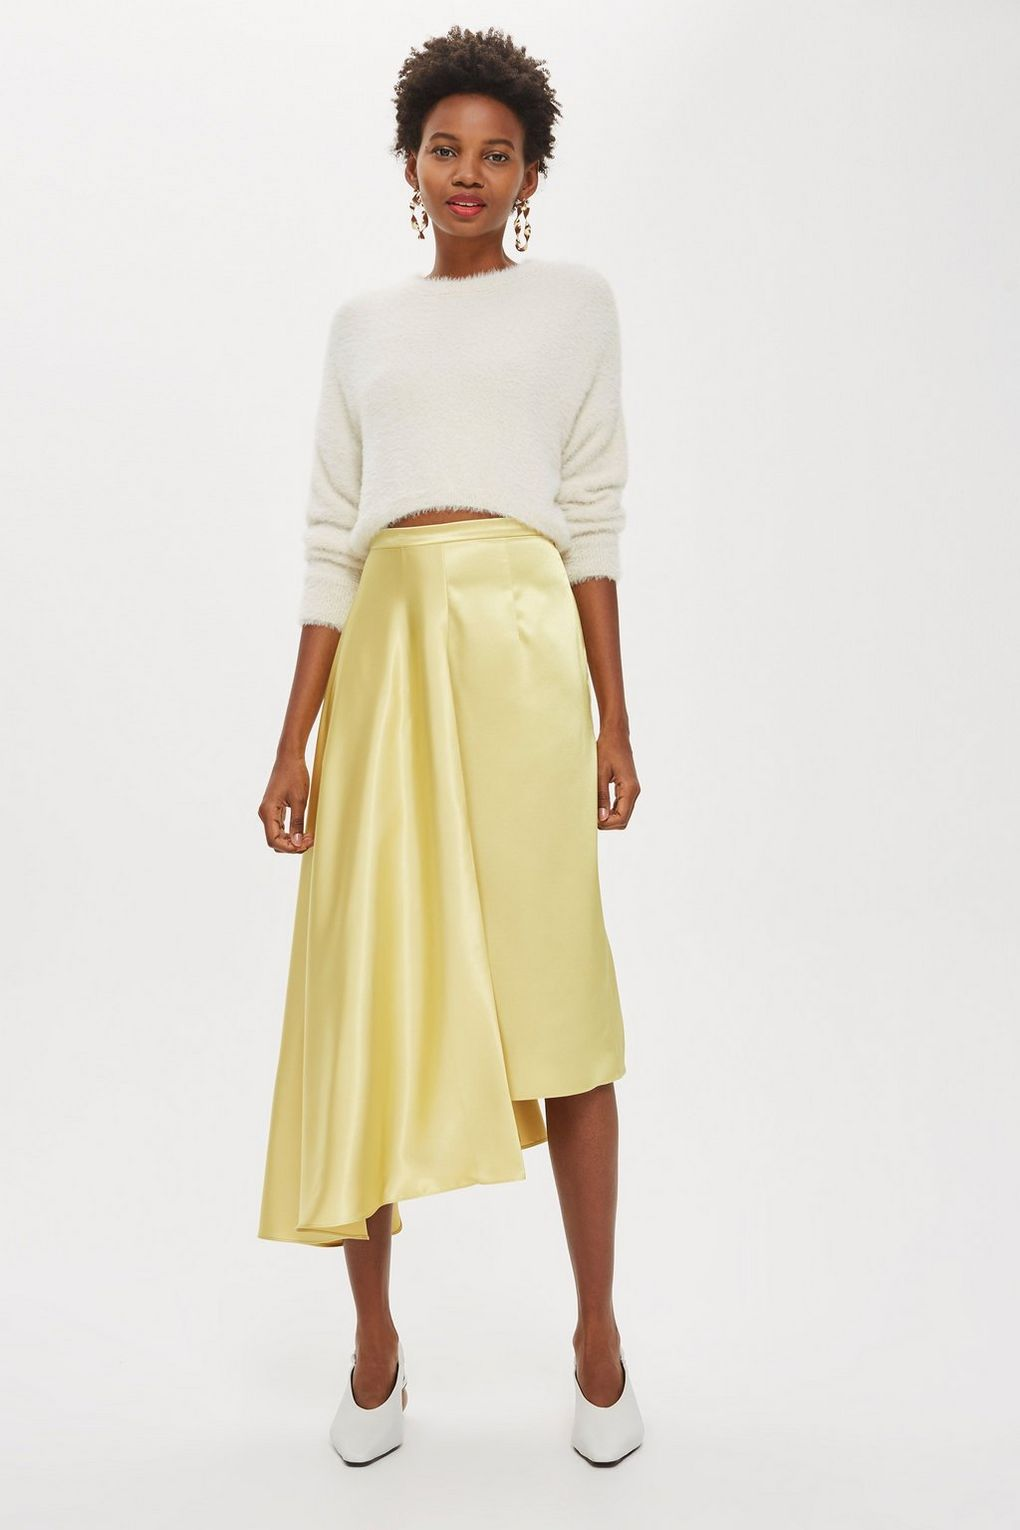 A pleated midi skirt. - I act like a 63 year old 50% of the time so I may as well dress like one, and I do. Wear a pleated skirt with a chunky knit jumper and Stan Smith esque trainers to really nail grandma chic.